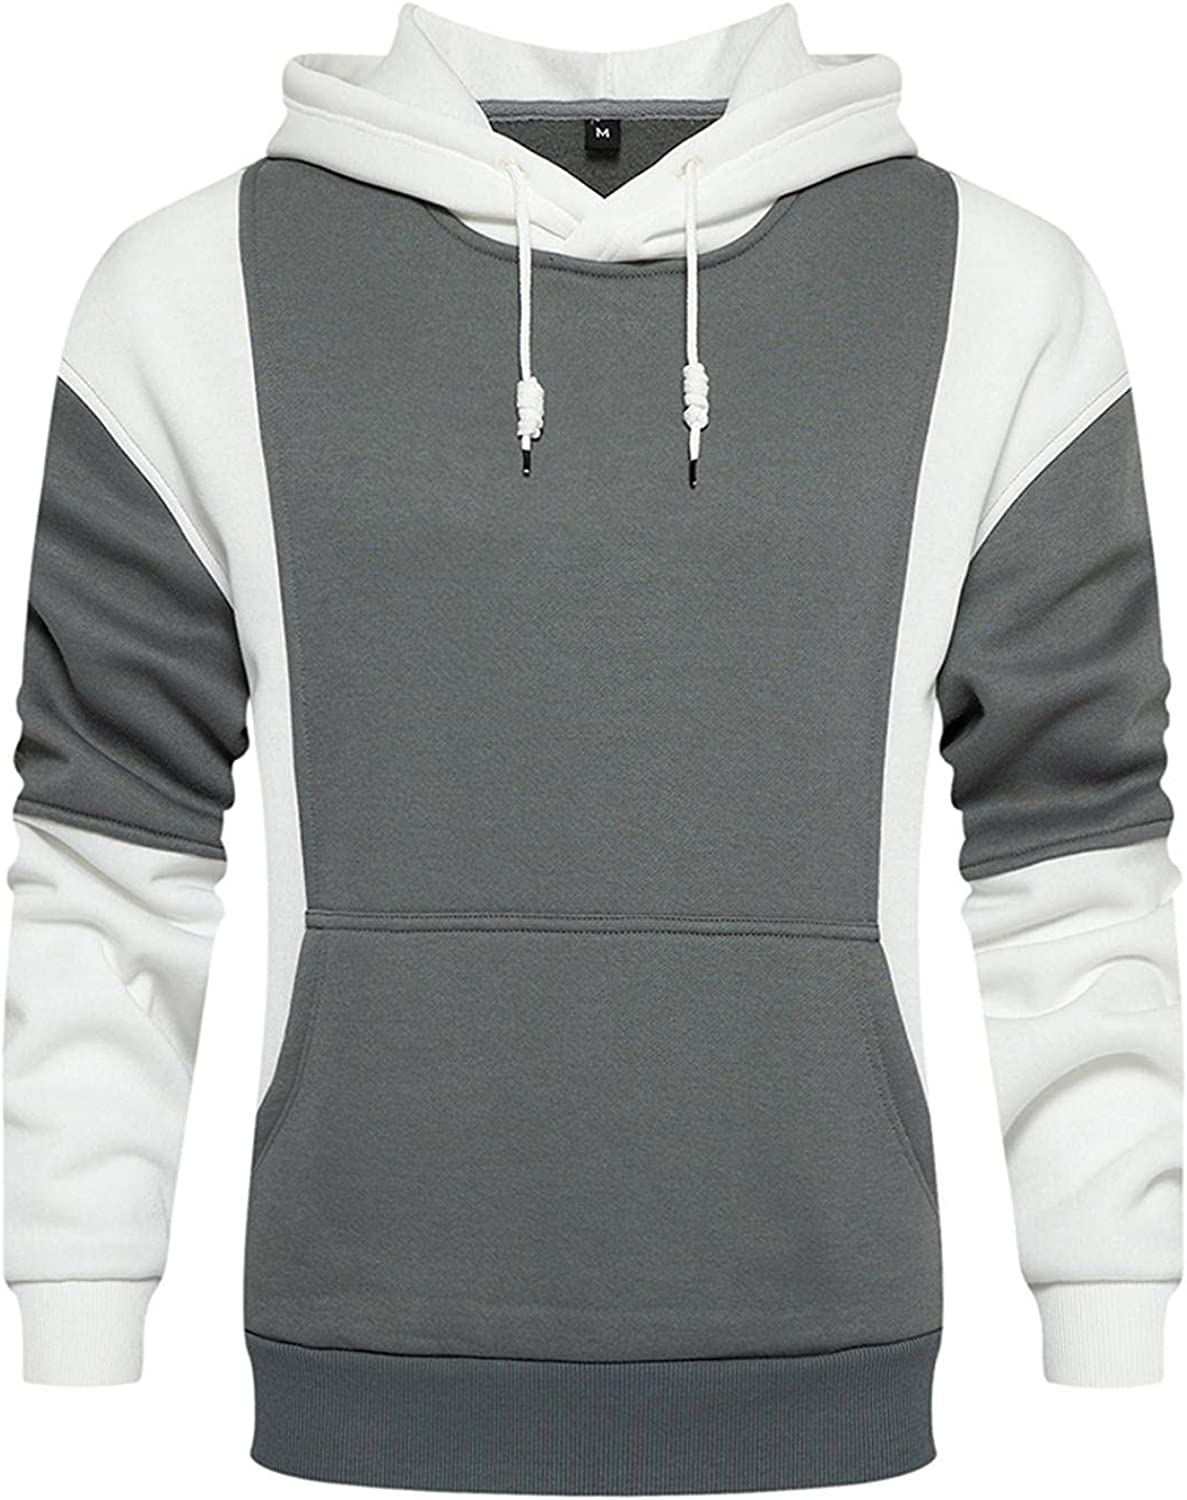 LEIYAN Mens Casual Hoodie Pullover Fashion Lightweight Long Sleeve Colorblock Hooded Sweatshirts for Running Jogging